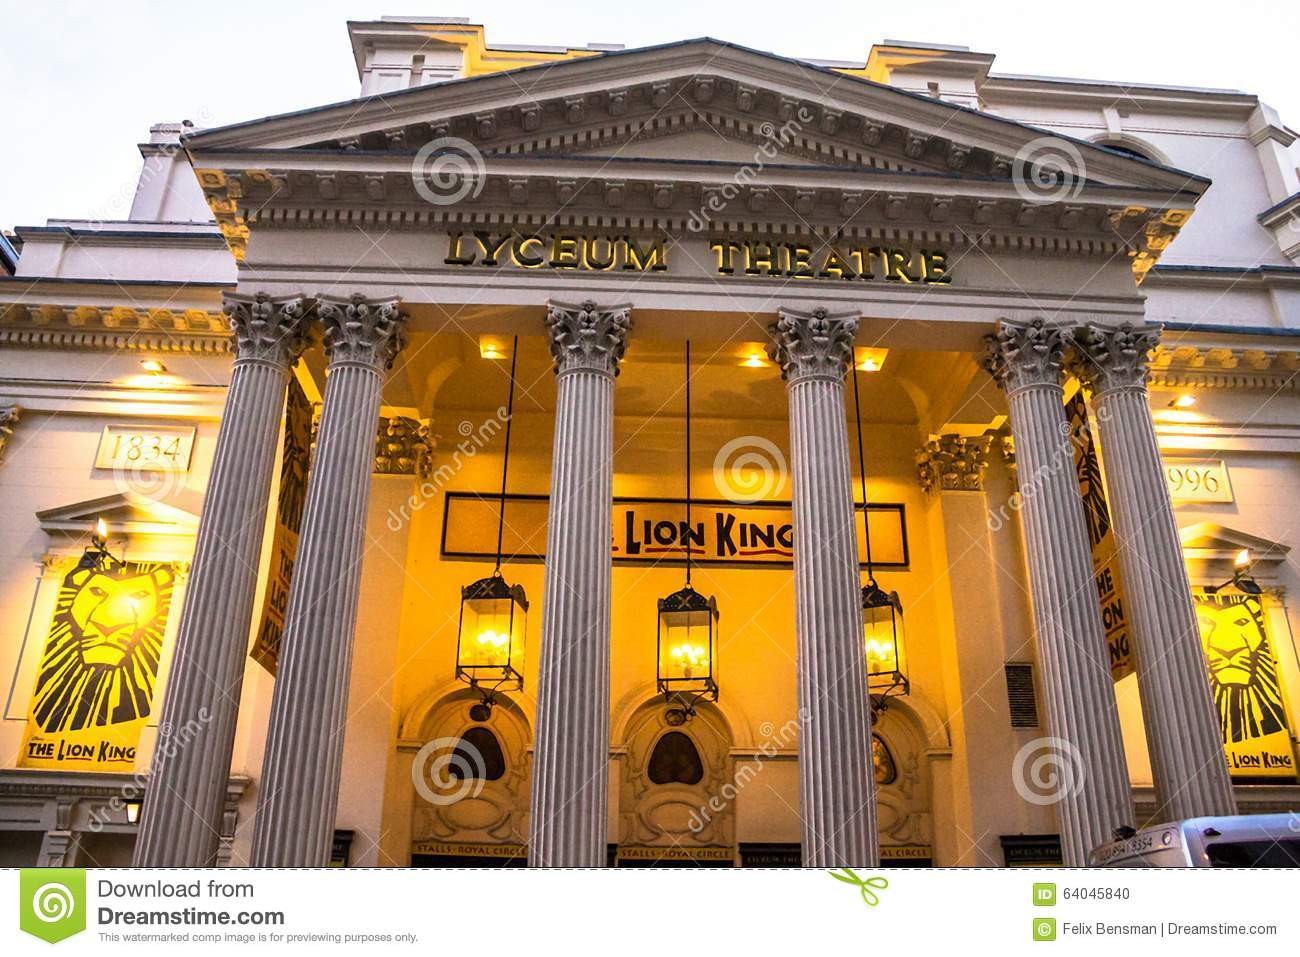 entrance to the popular london u0026 39 s lyceum theatre with lion